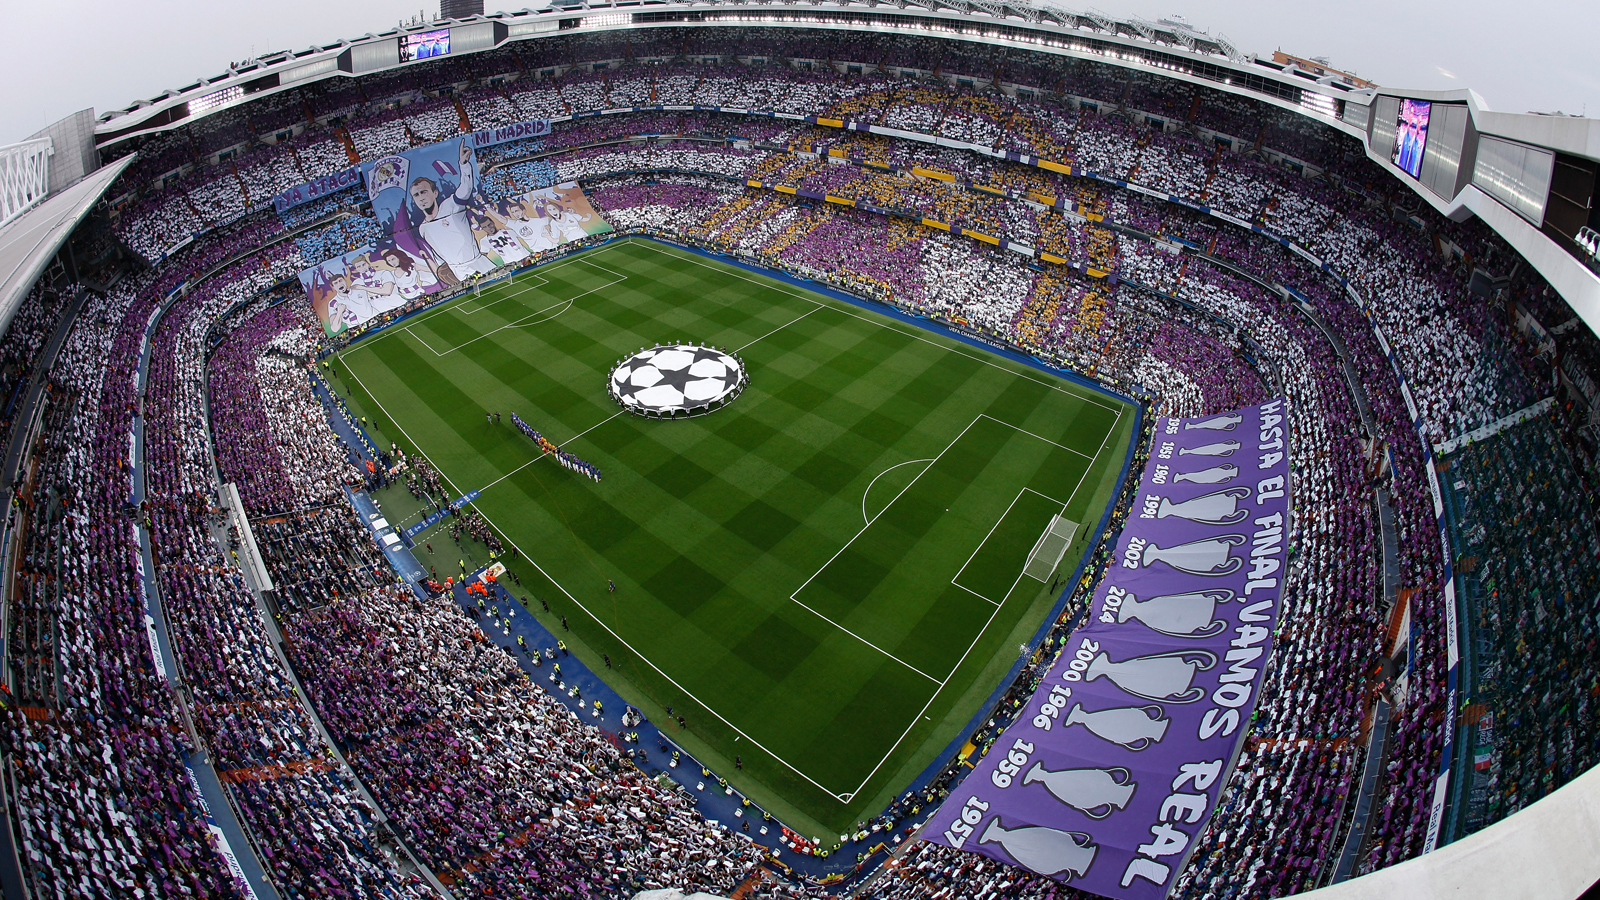 Real Madrid fans went all out prior to the second leg of the 2014-15 Champions League semifinal vs. Juventus.